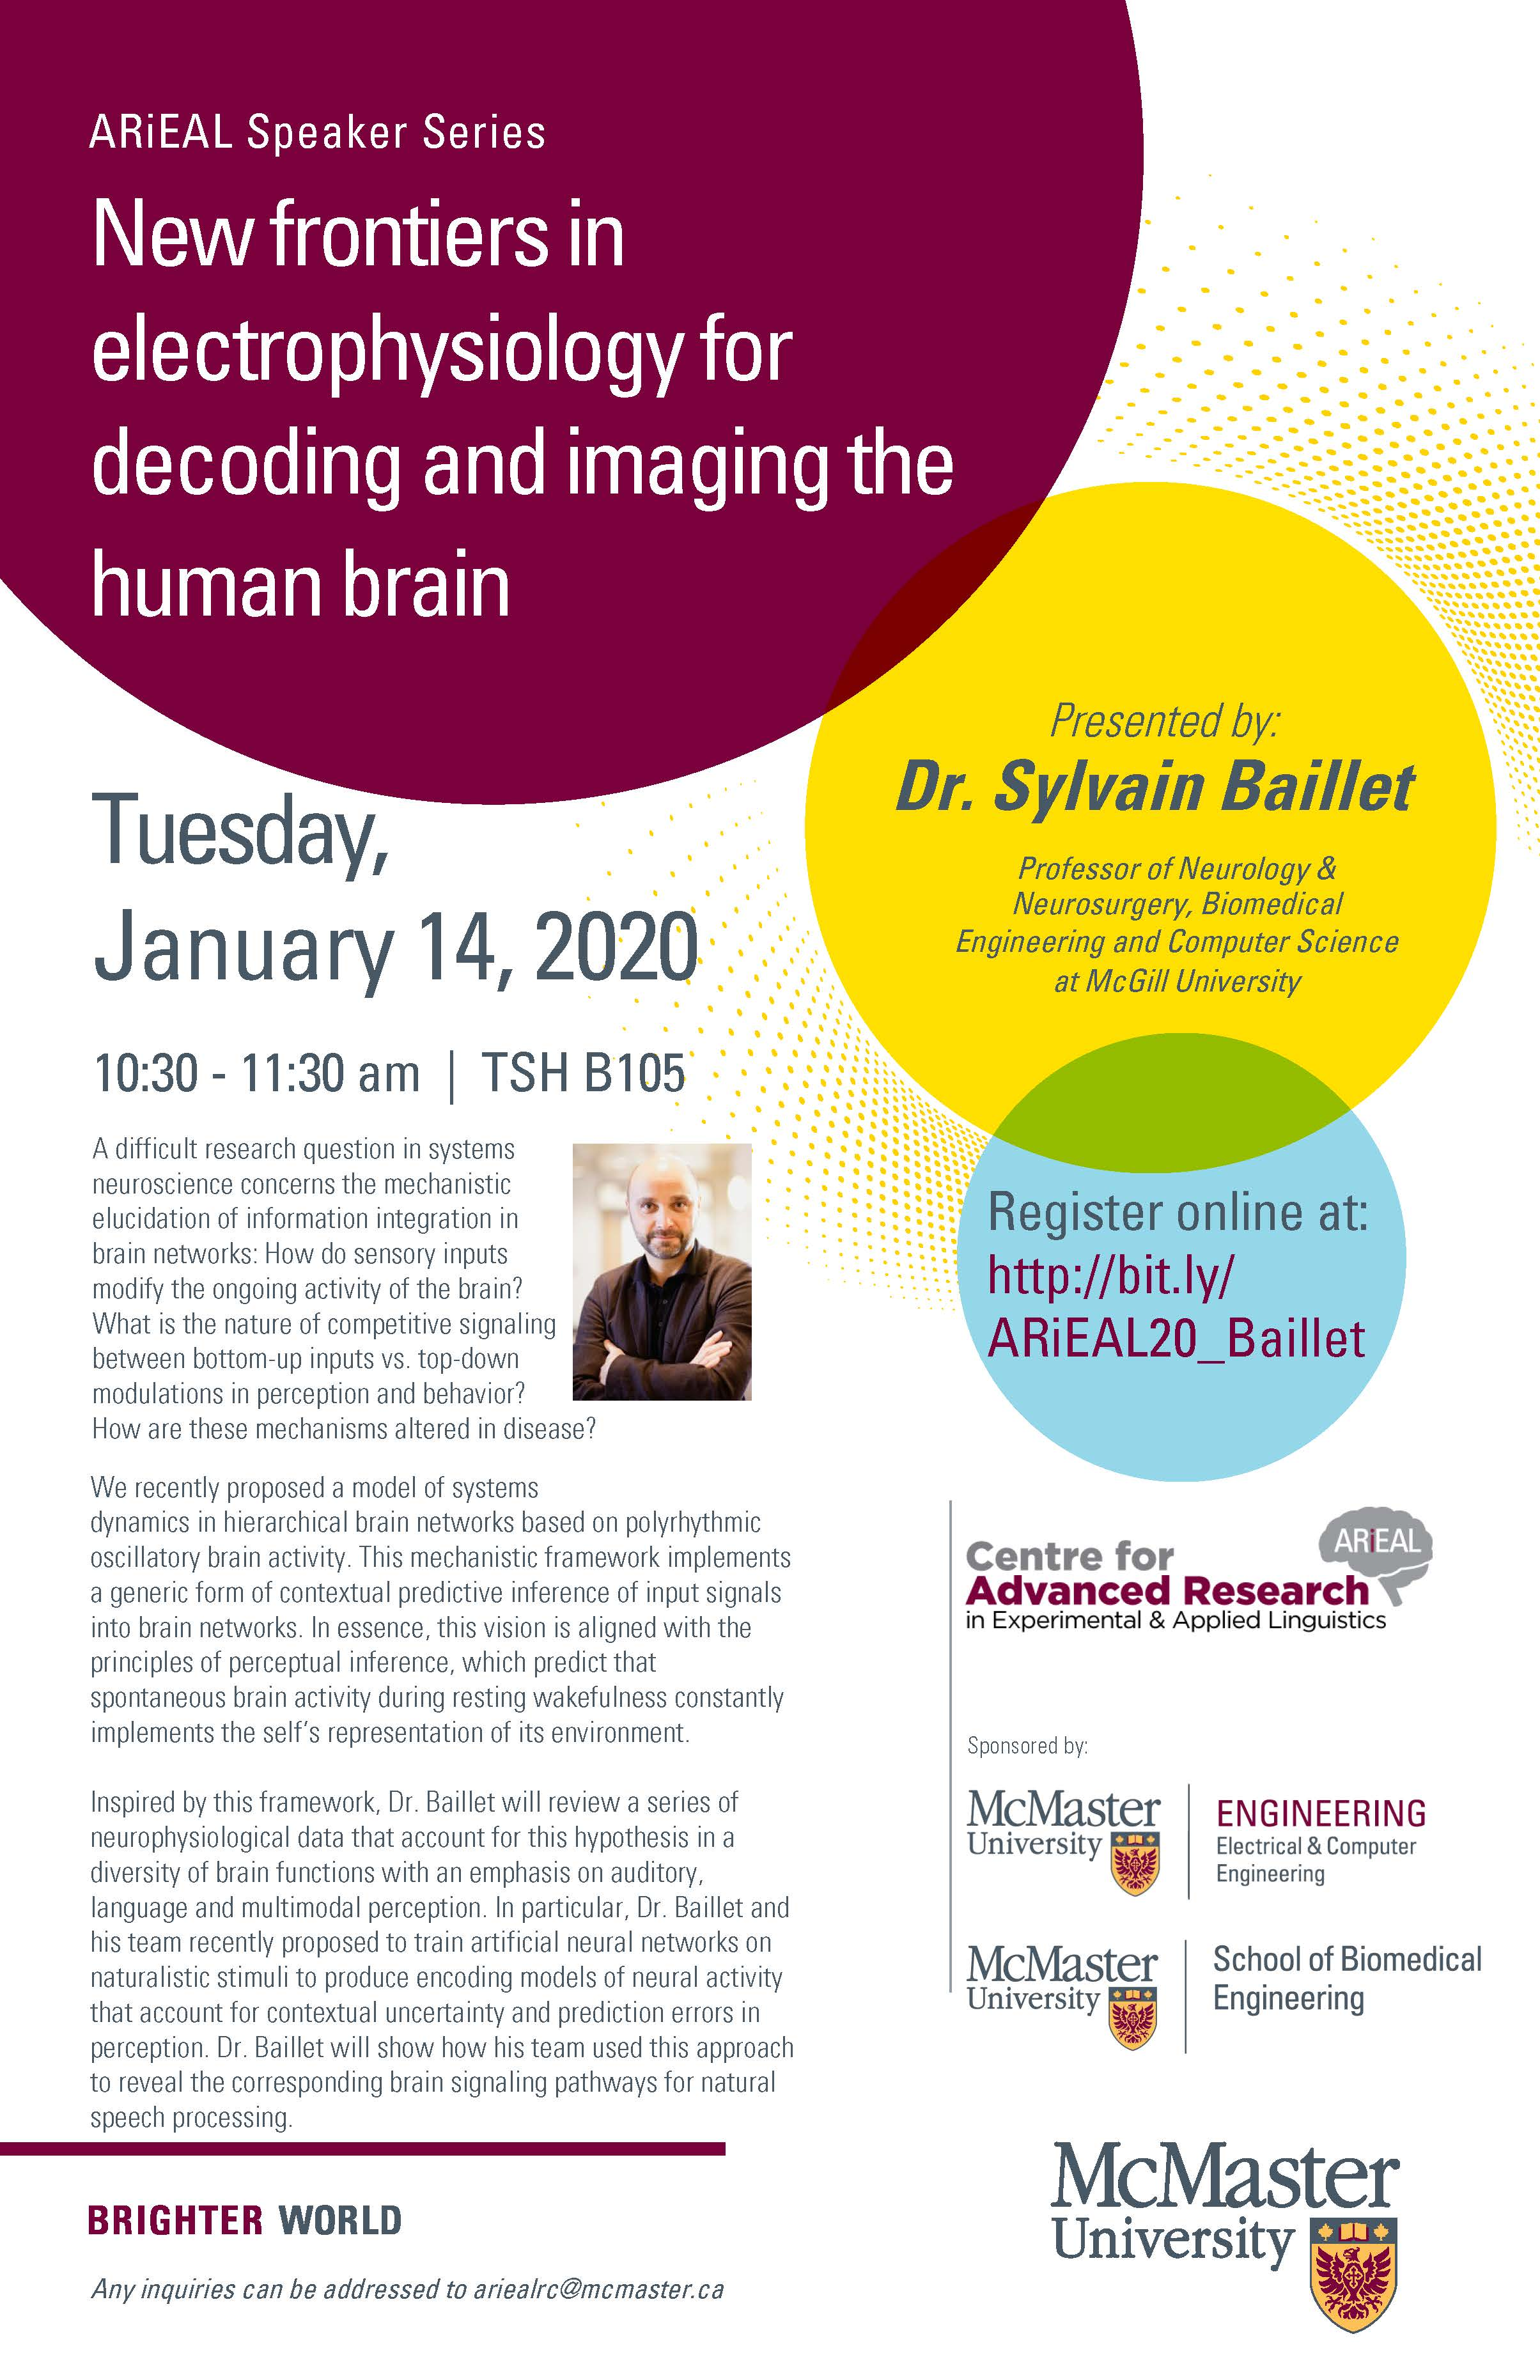 [Speaker Series] New frontiers in electrophysiology for decoding and imaging the human brain